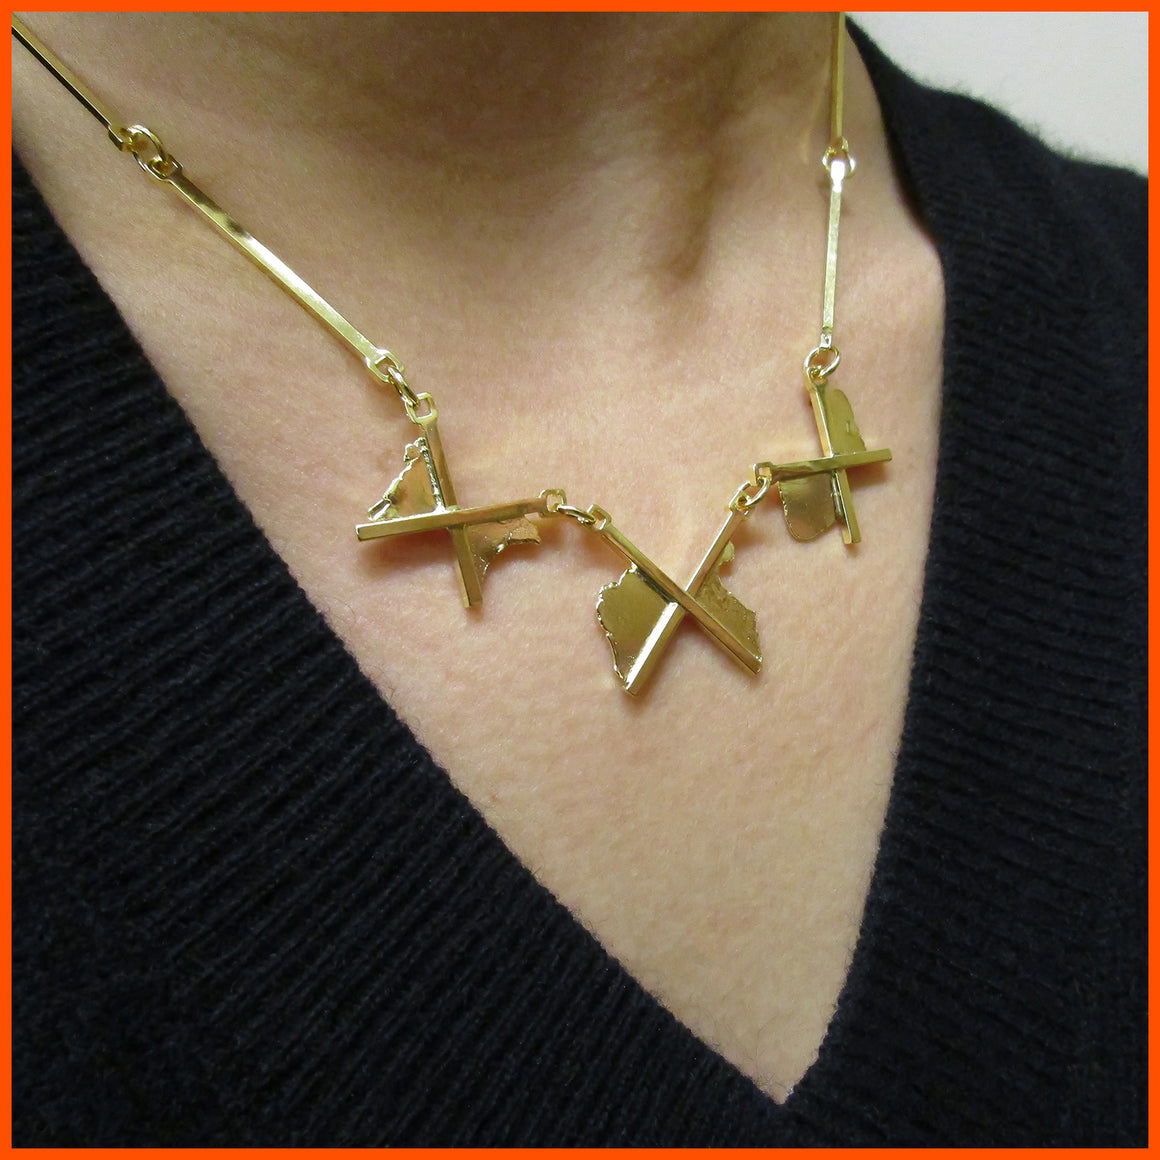 One of a kind, handmade gold necklace by Seth Papac.